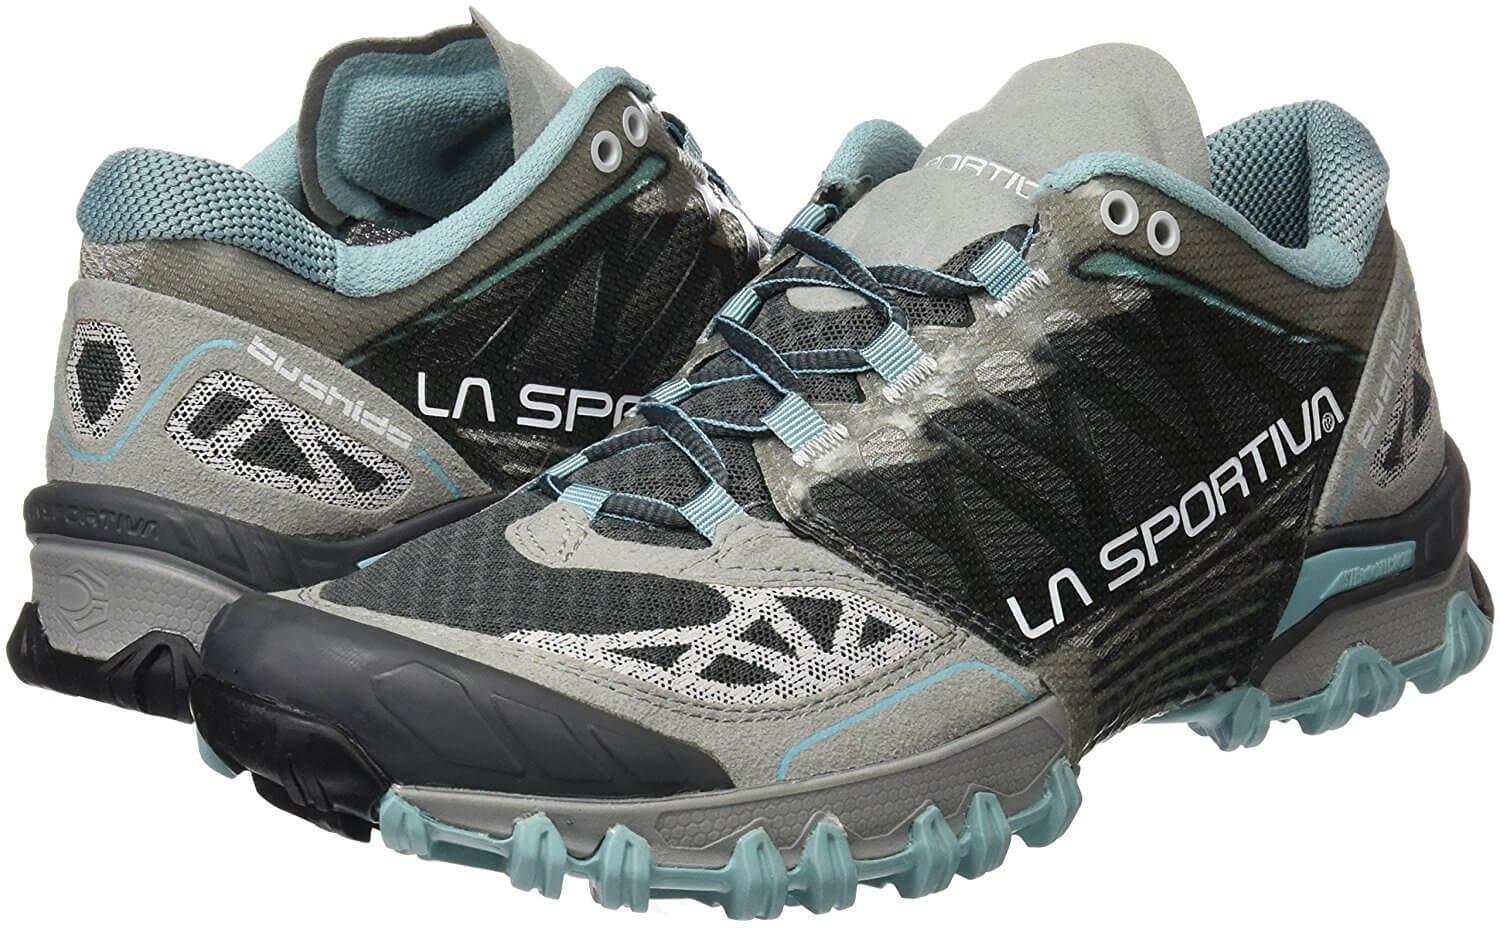 trail runners with pronation problems will find the La Sportiva Bushido a great stability shoe that performs great on the trail